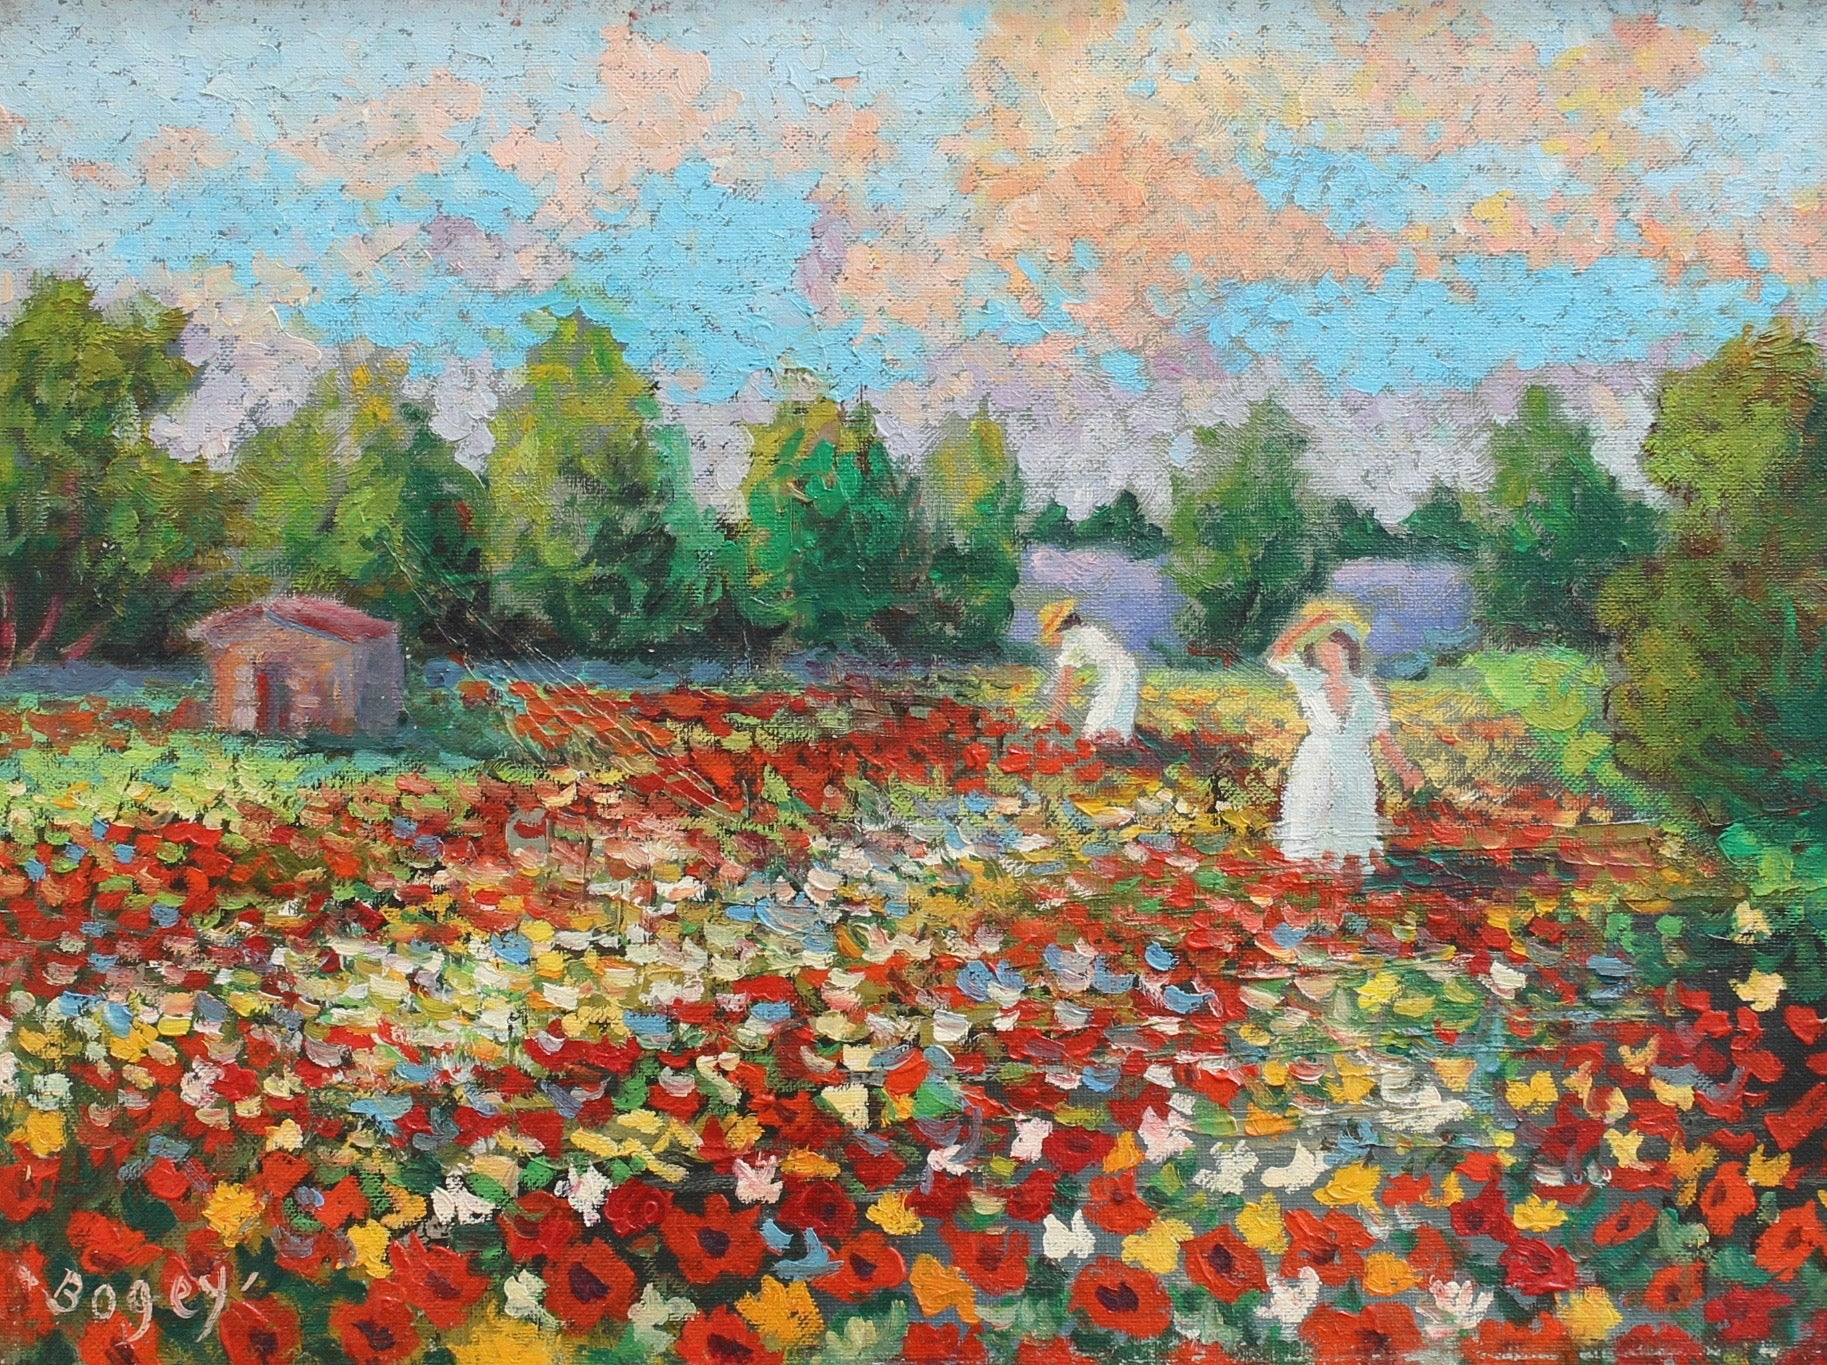 'Women Tending Flowered Field' by Antoine Bogey (circa 1960s)